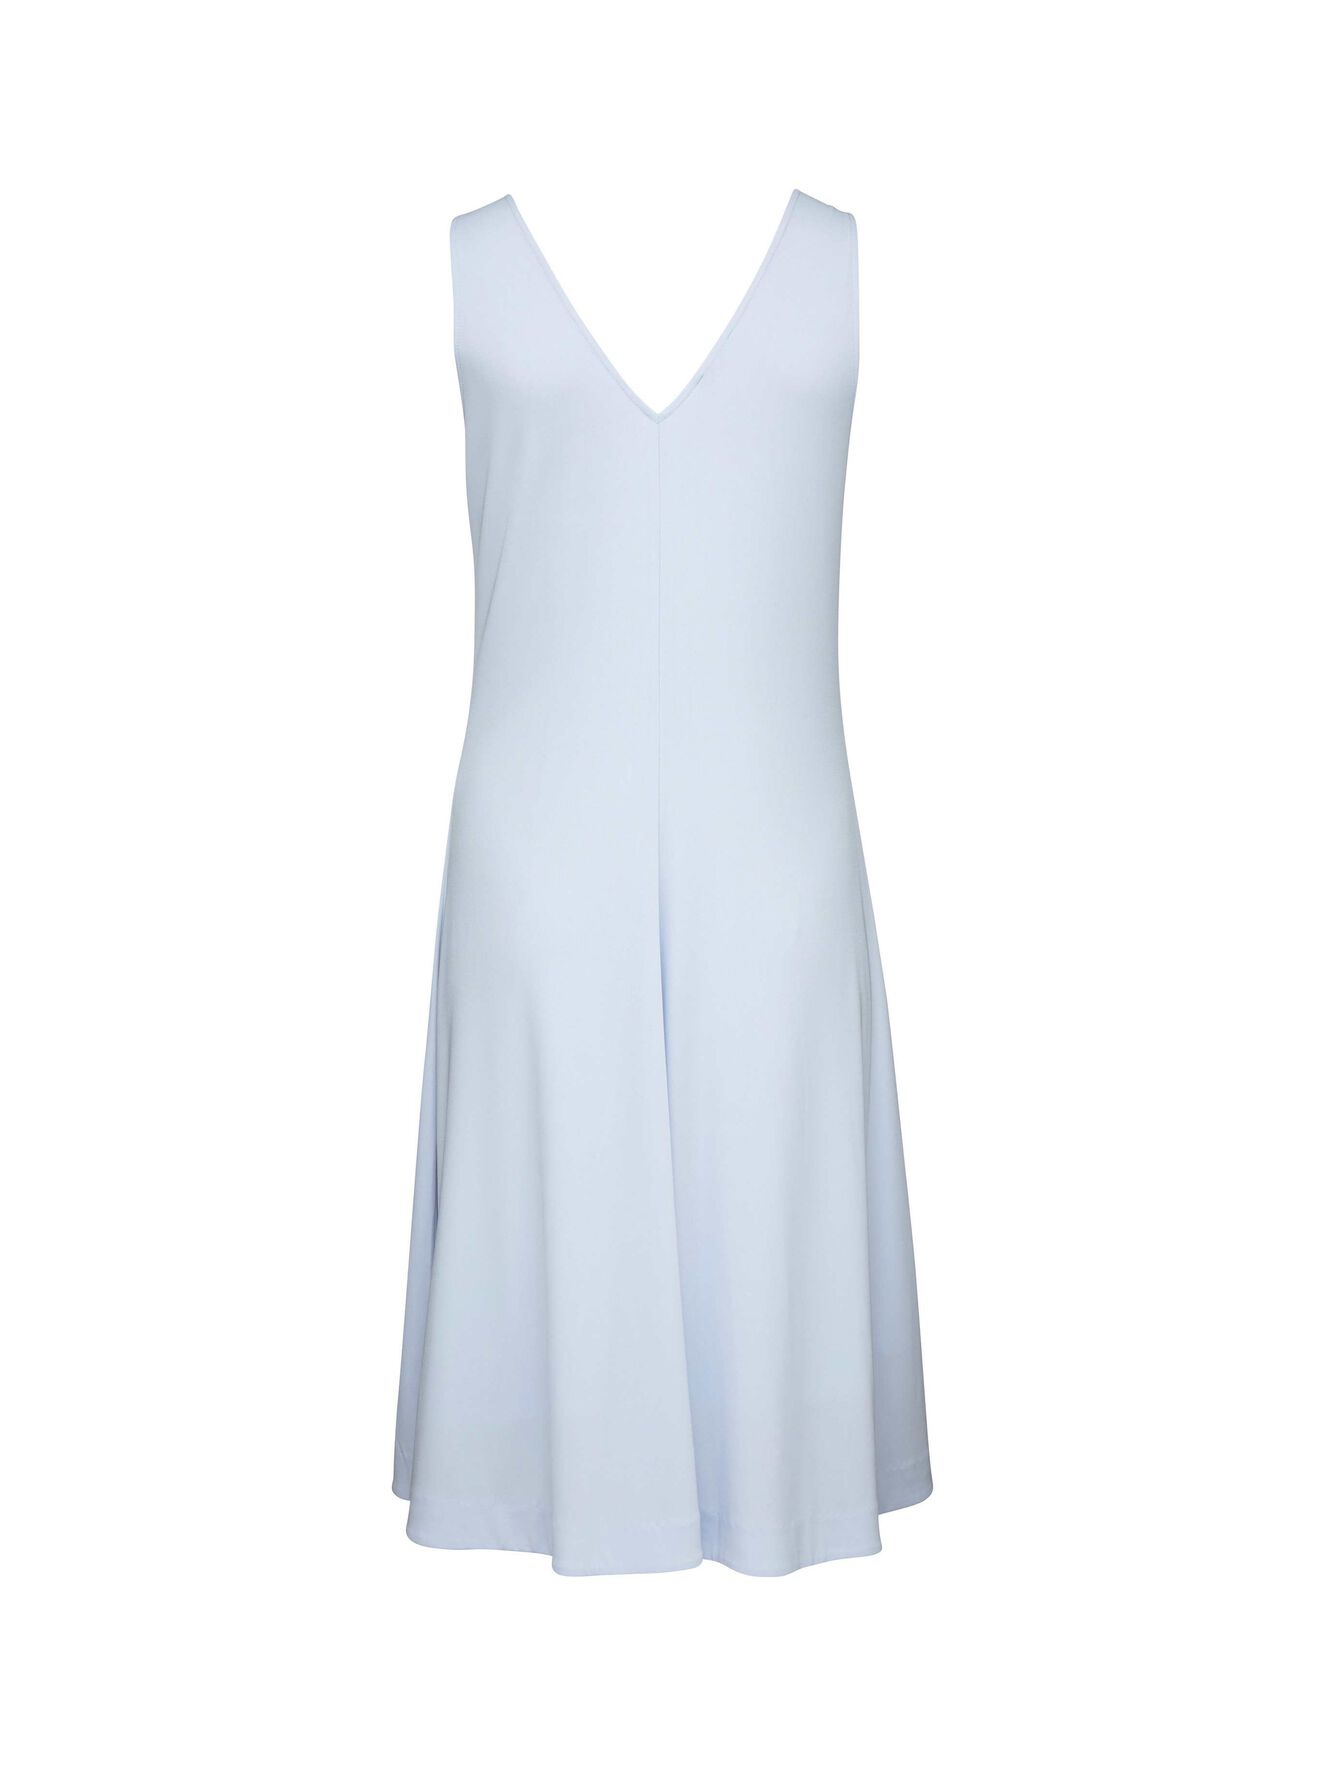 Emerly Dress in Art Deco Blue from Tiger of Sweden